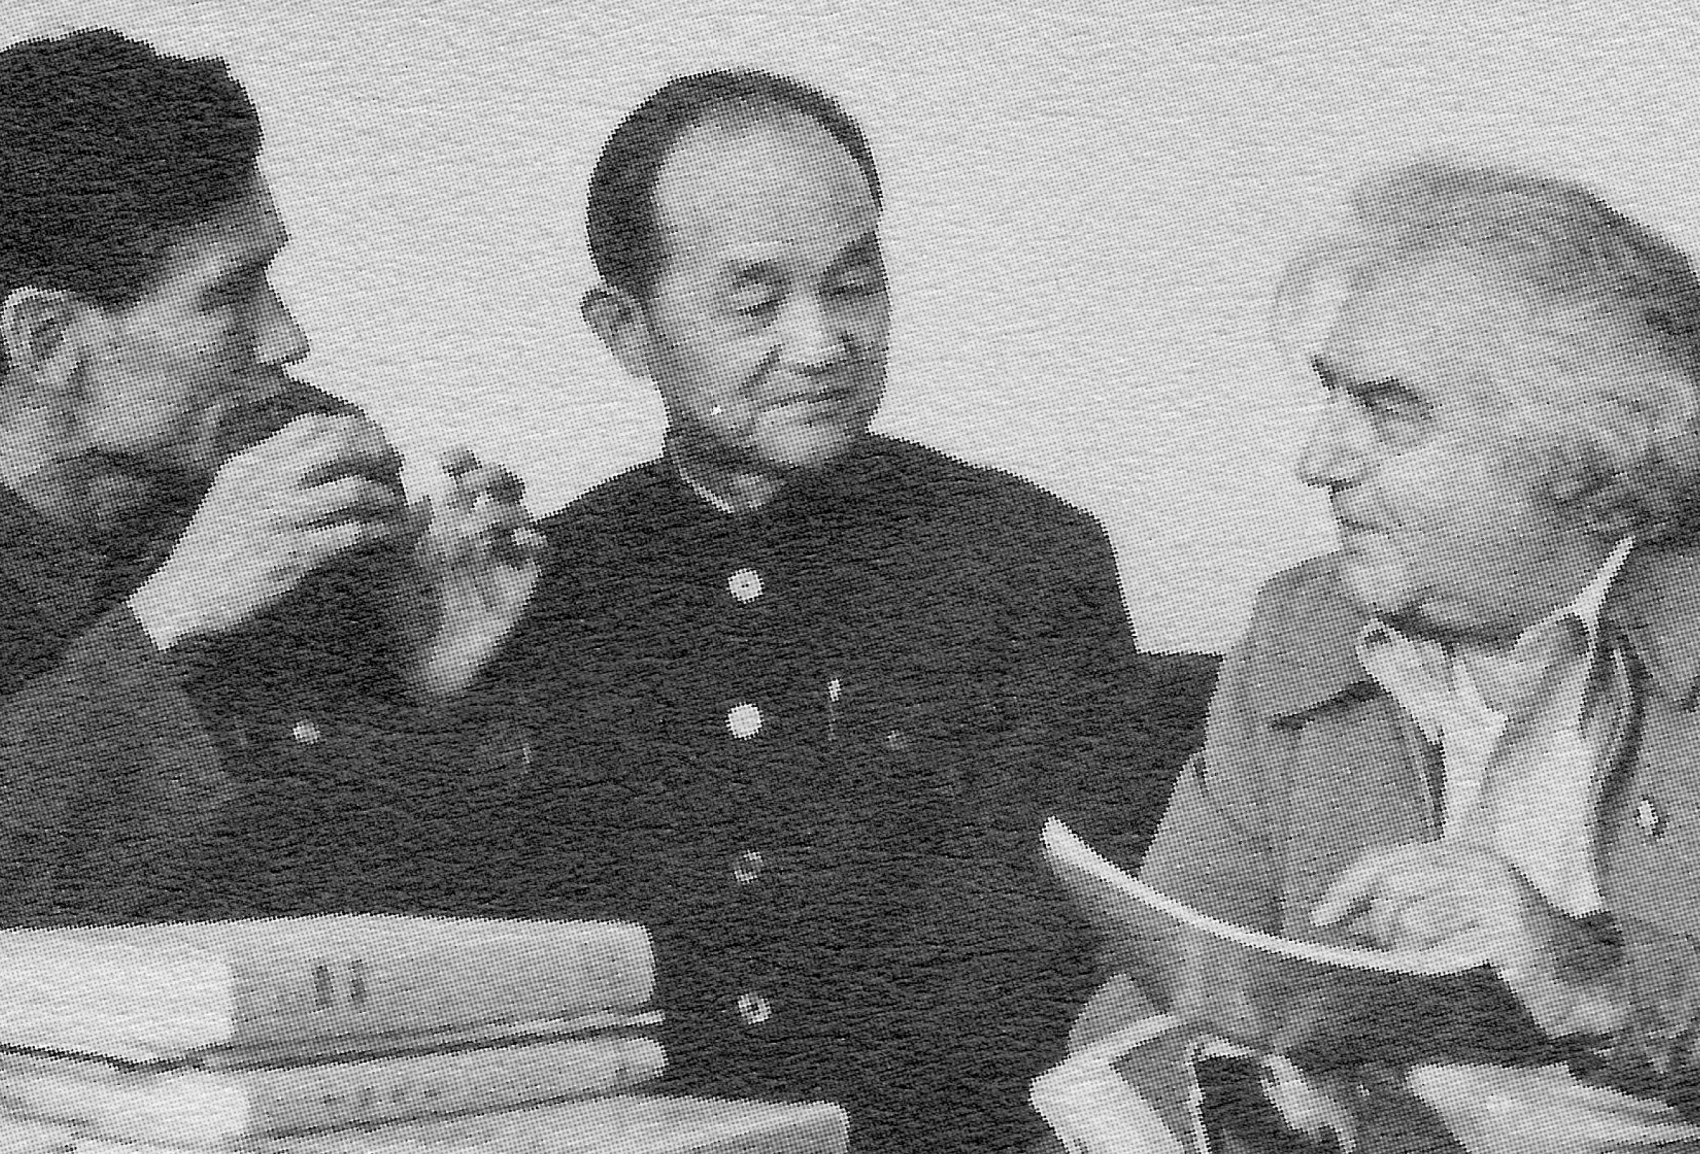 Cornell Capa, director of the International Center of Photography, with Xu Xiaobing (center), chairman of the Chinese Photographers Association. An interpreter is to his right.